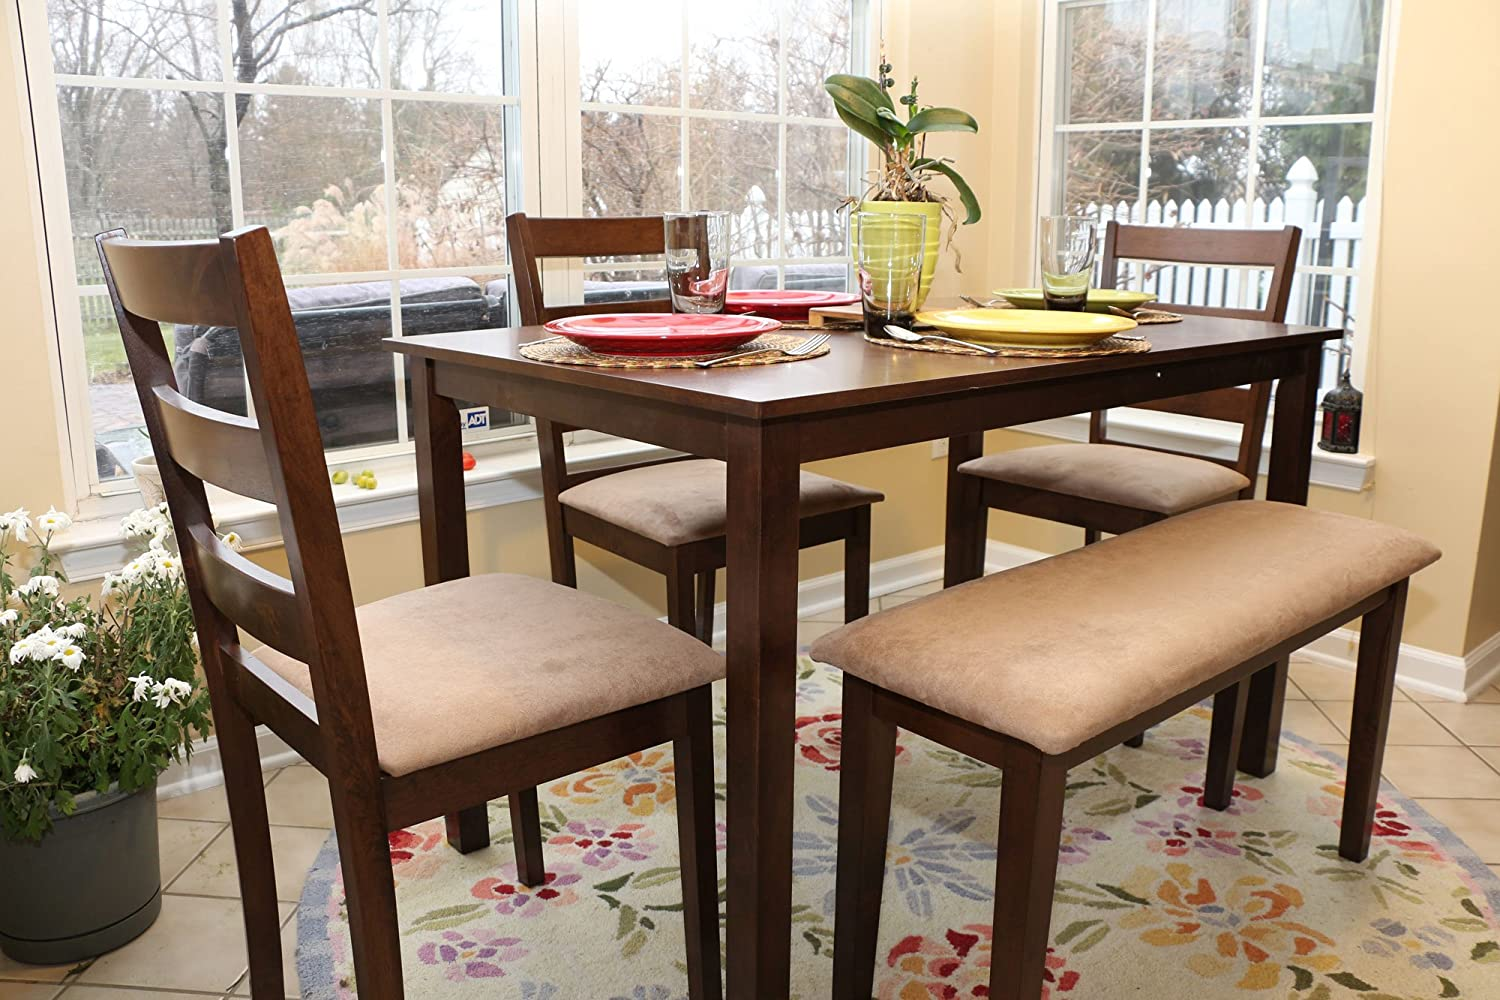 amazoncom 5pc dining dinette table chairs bench set walnut finish 150237 table chair sets - Dining Room Table With Chairs And Bench